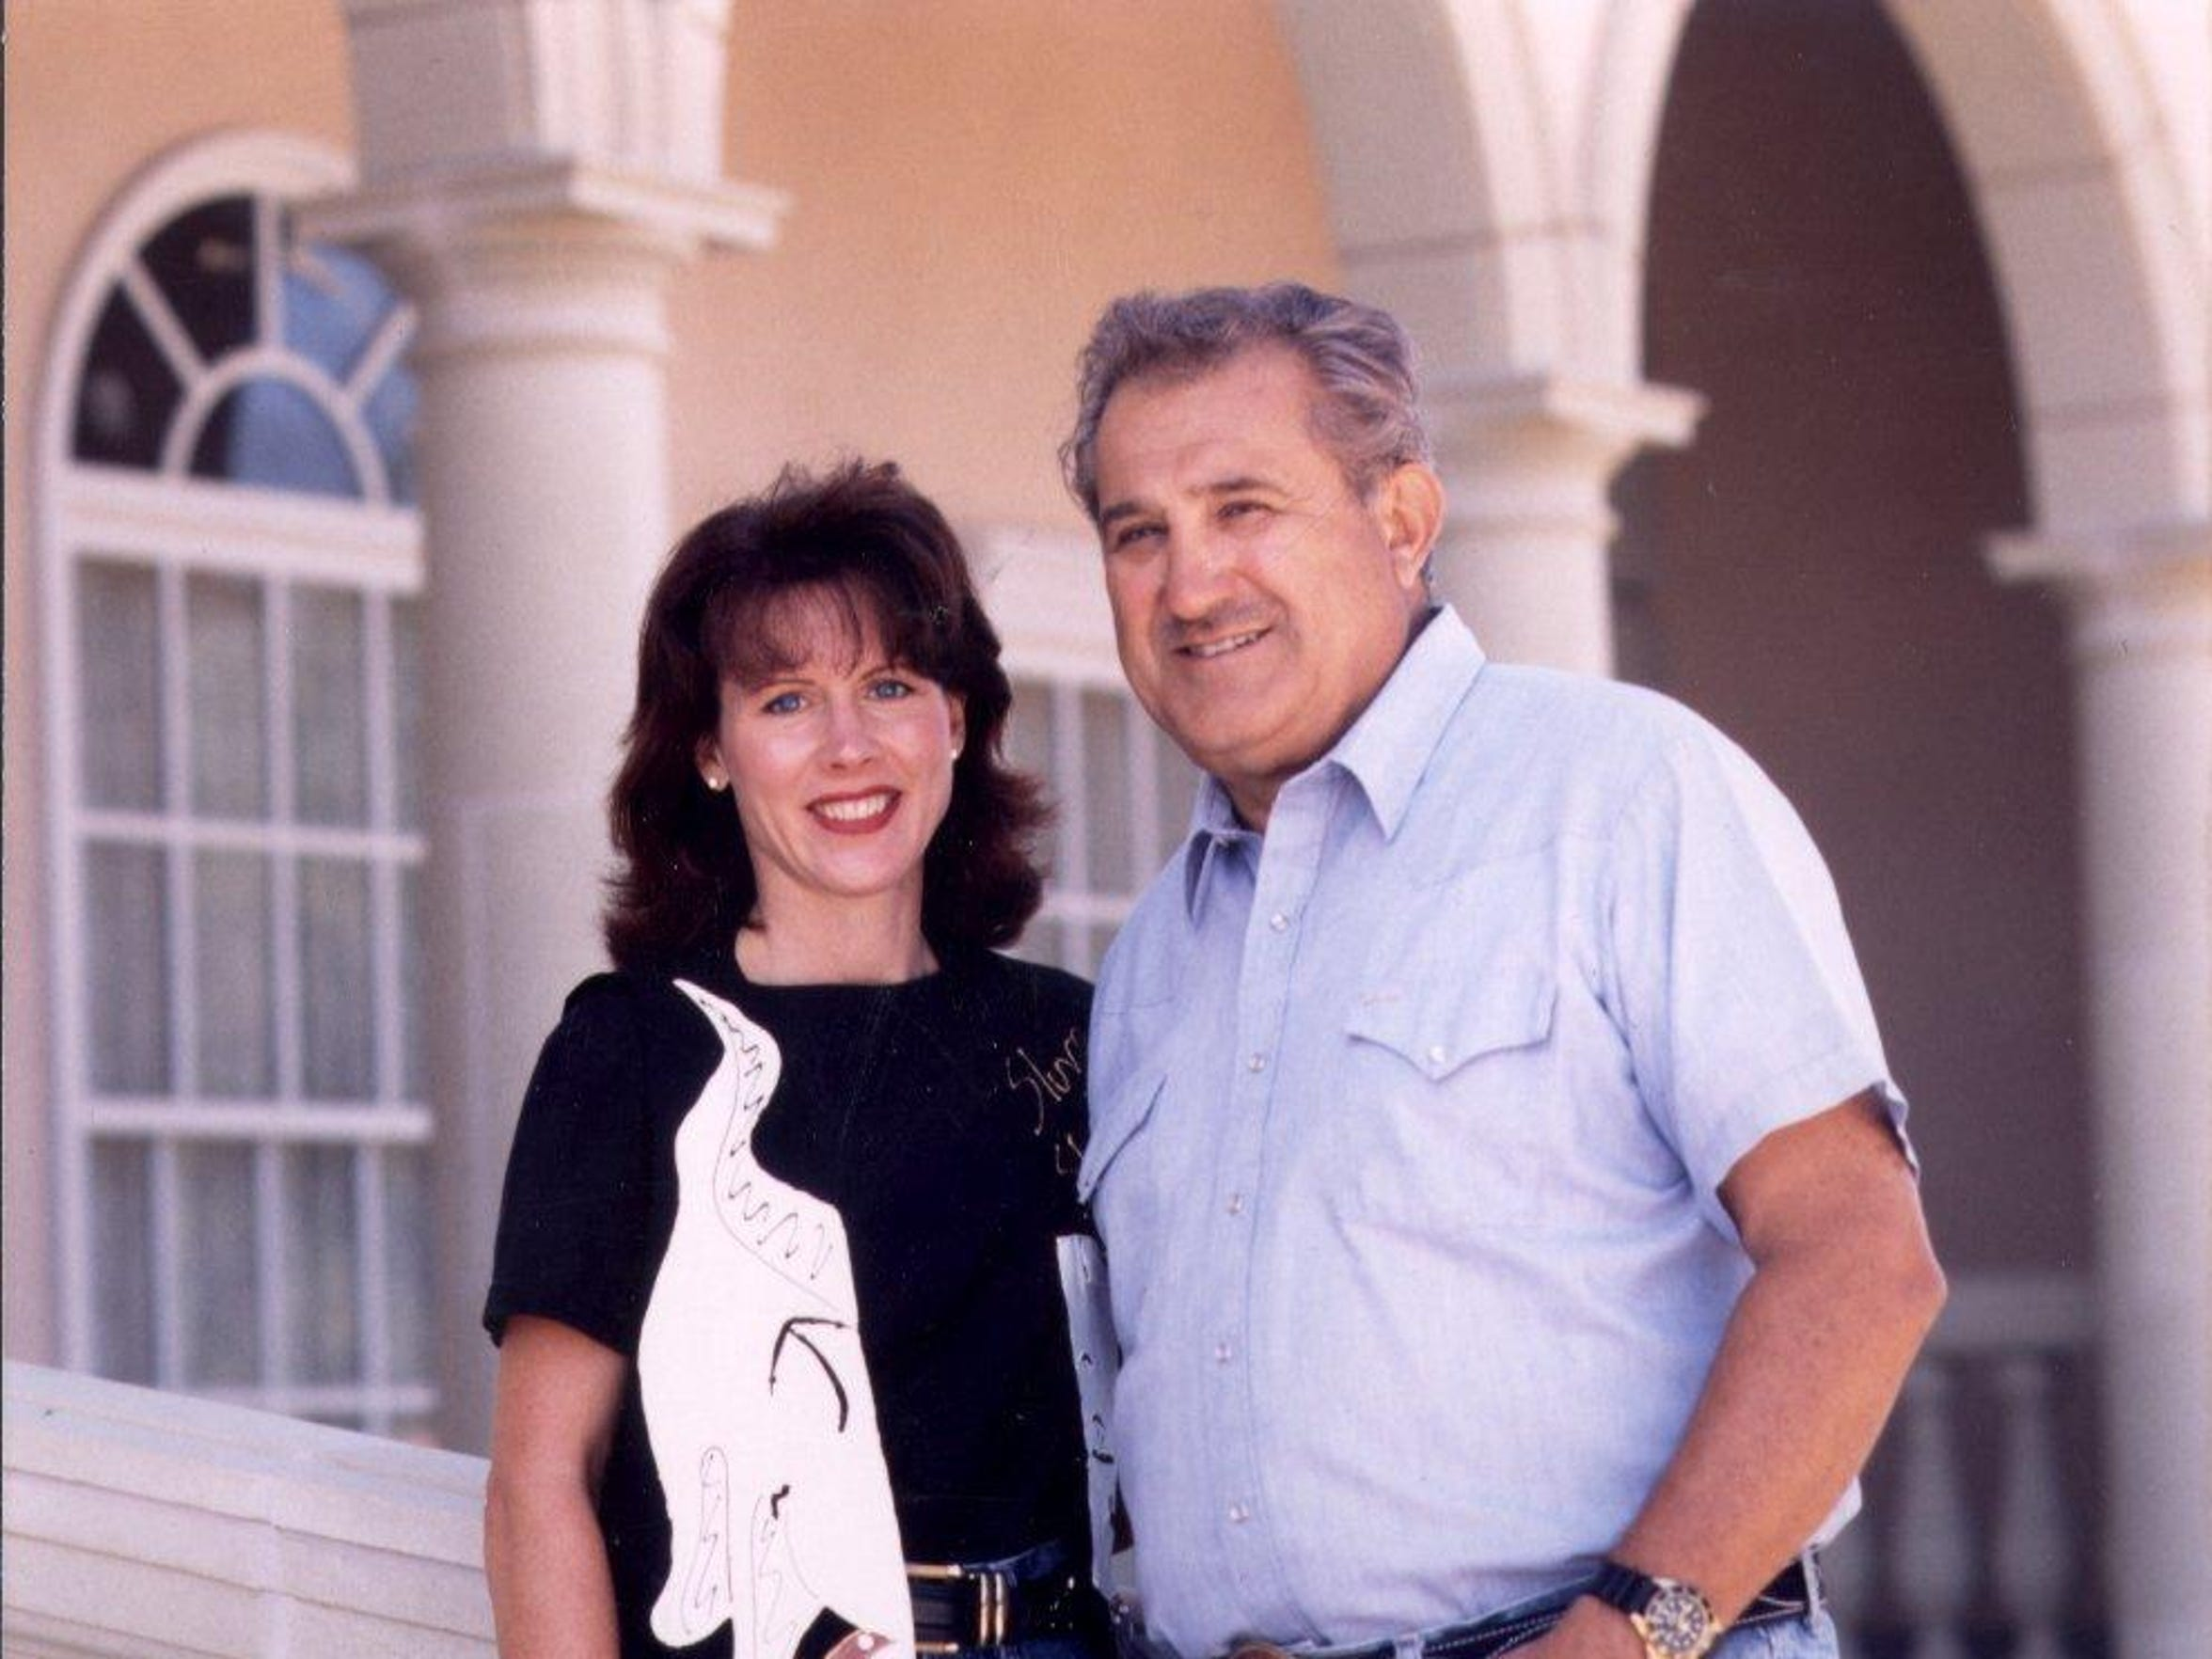 Don Carano and his wife Rhonda take a moment in the late 1990s at their Ferrari-Carano Vineyards and Winery, now one of Sonoma County's leading producers.